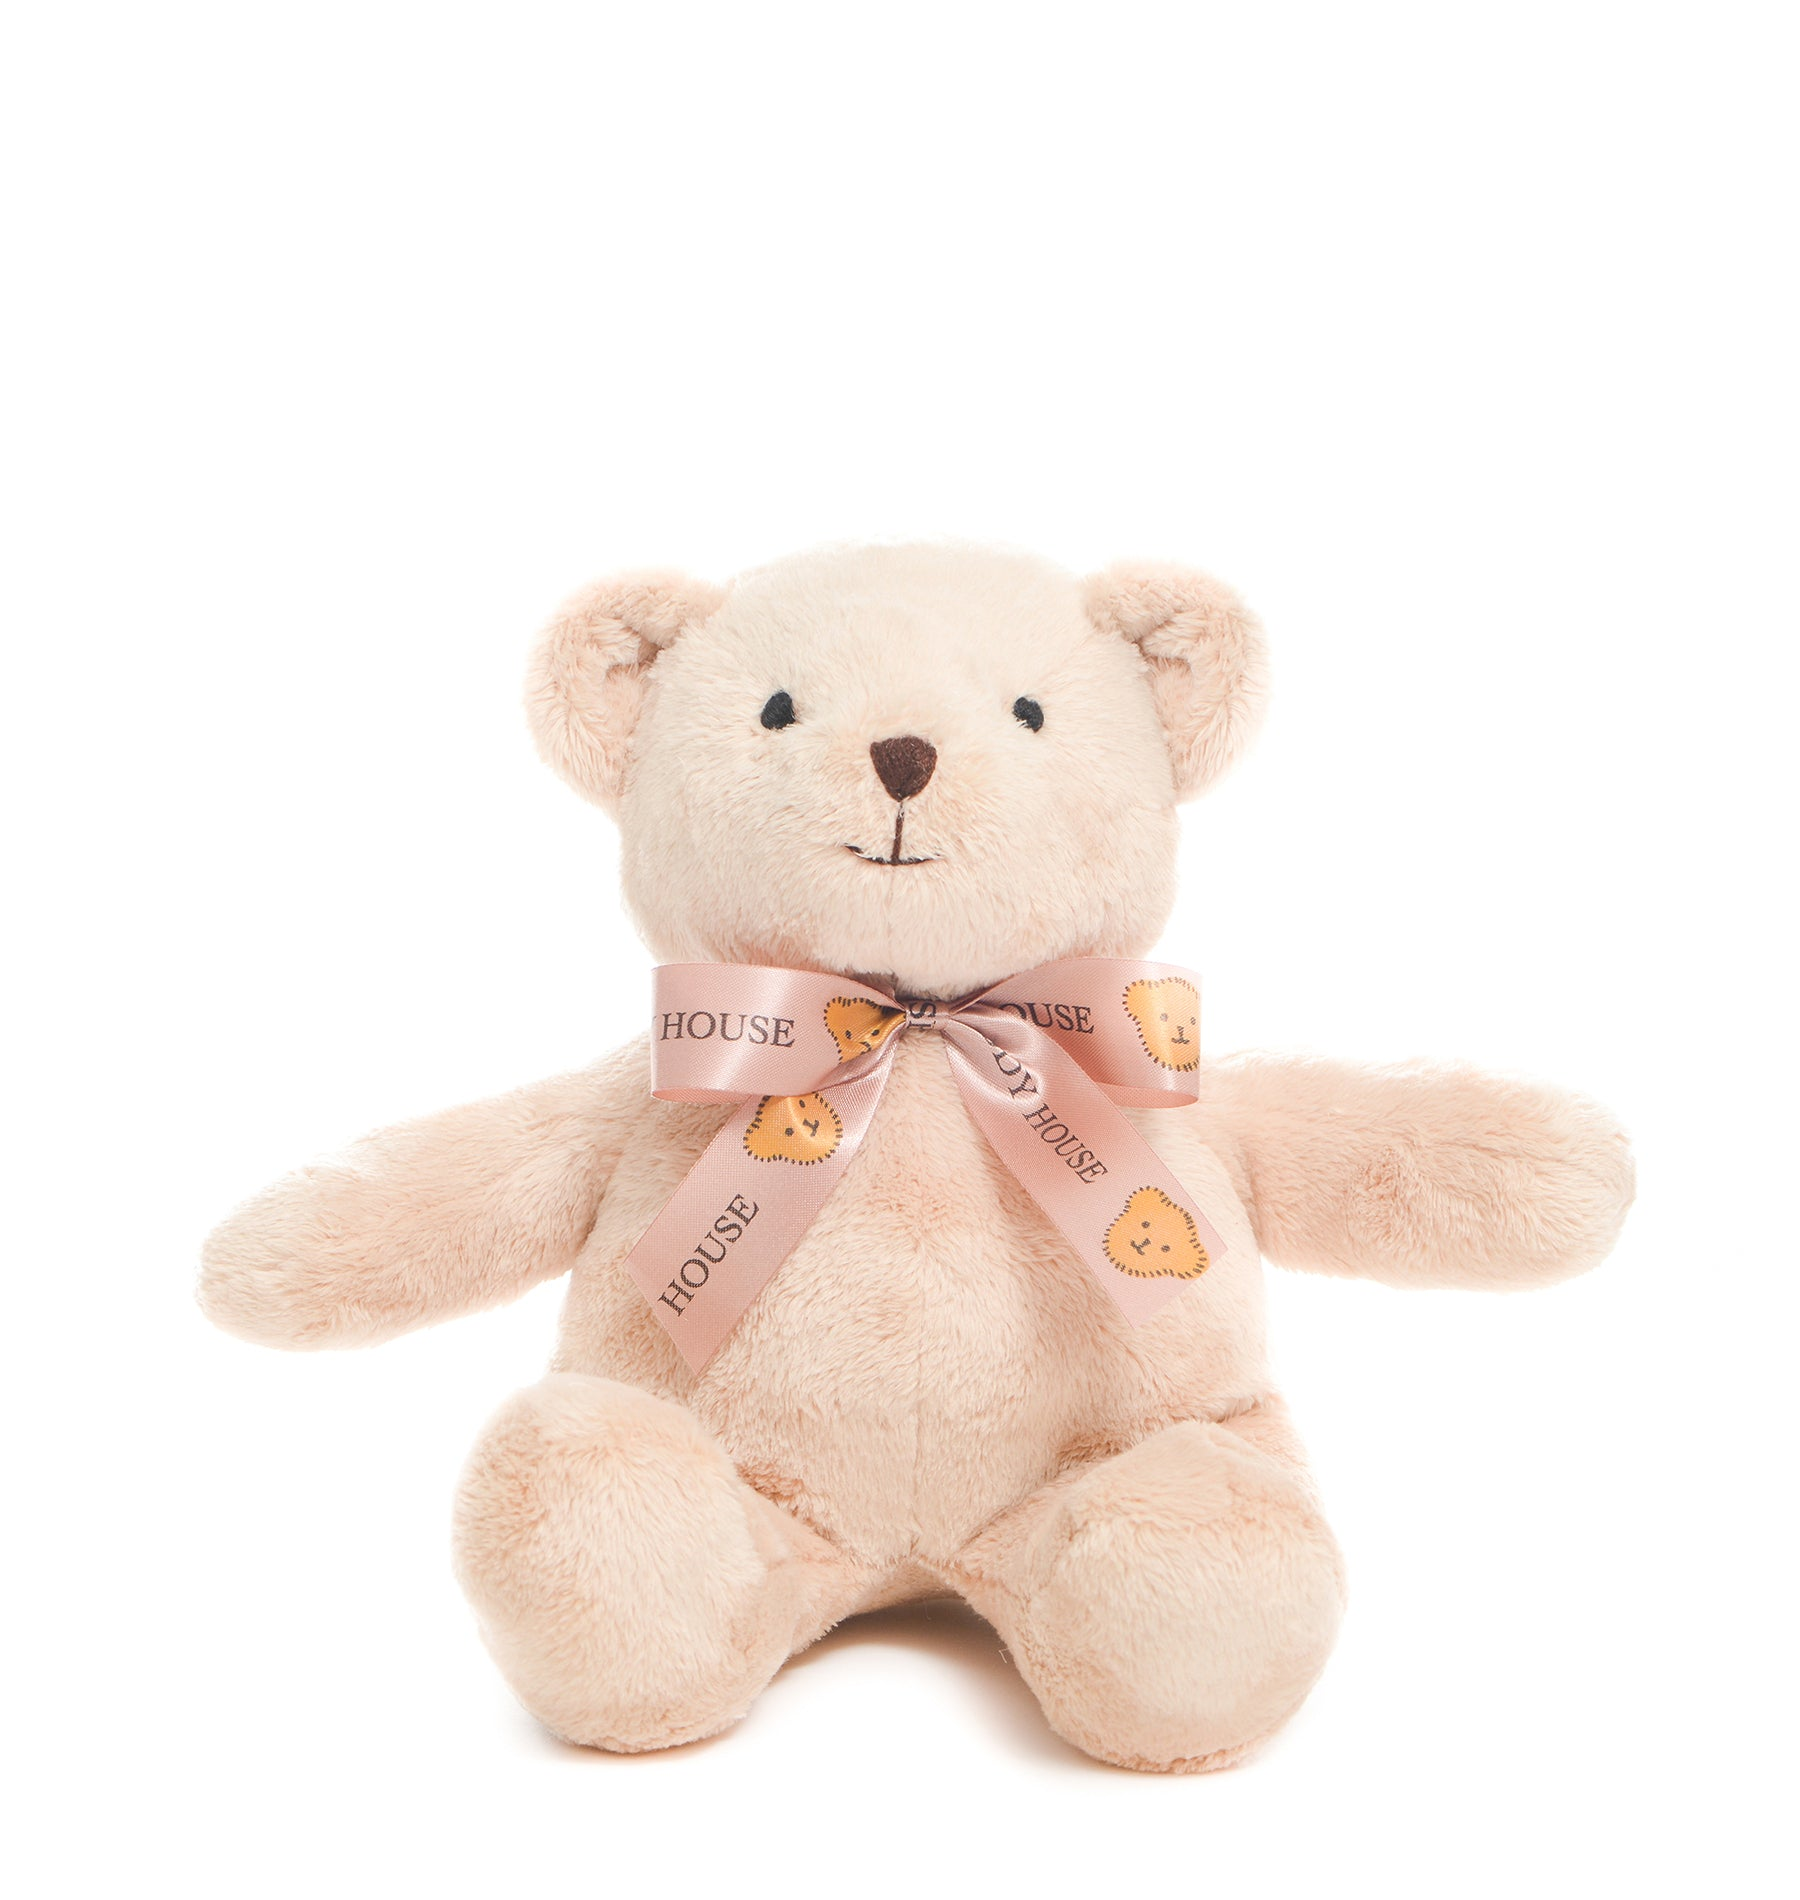 TEDDY HOUSE BONEKA TEDDY BEAR NANA BEAR 08 INCHI